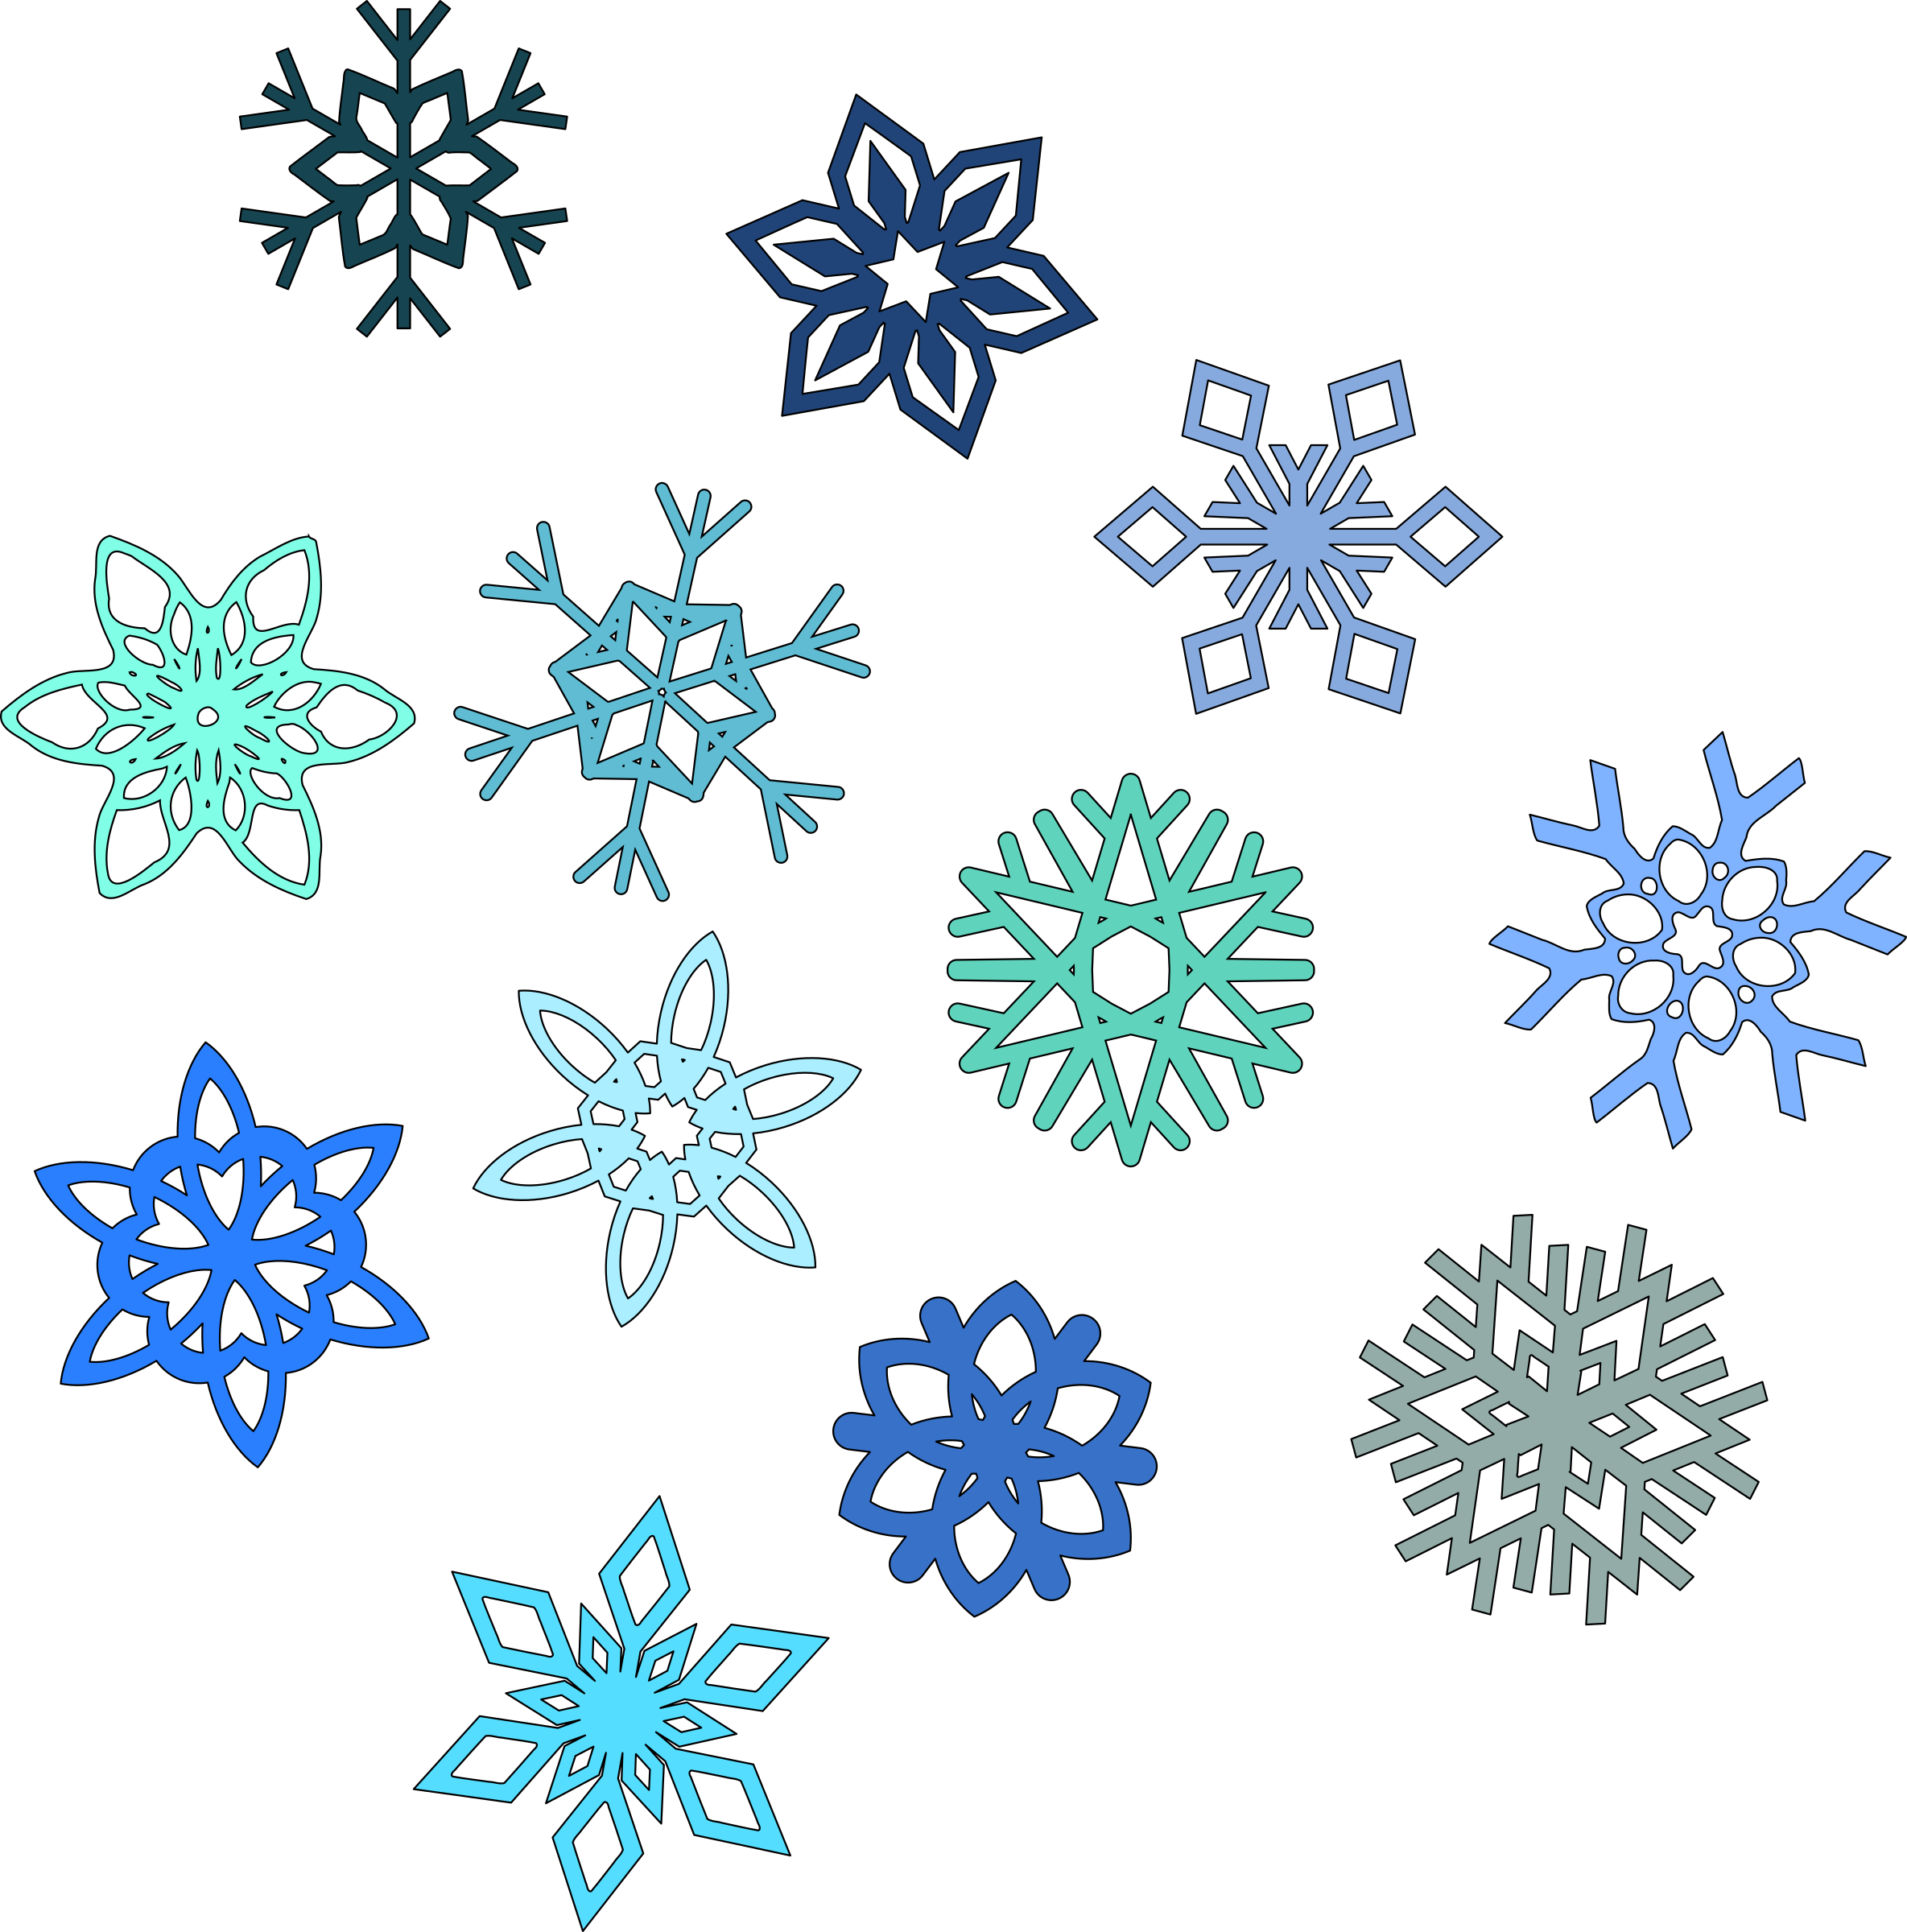 Snowflake wind clipart banner freeuse Keeping a Snow Journal | Pinterest | Scrapbooking banner freeuse